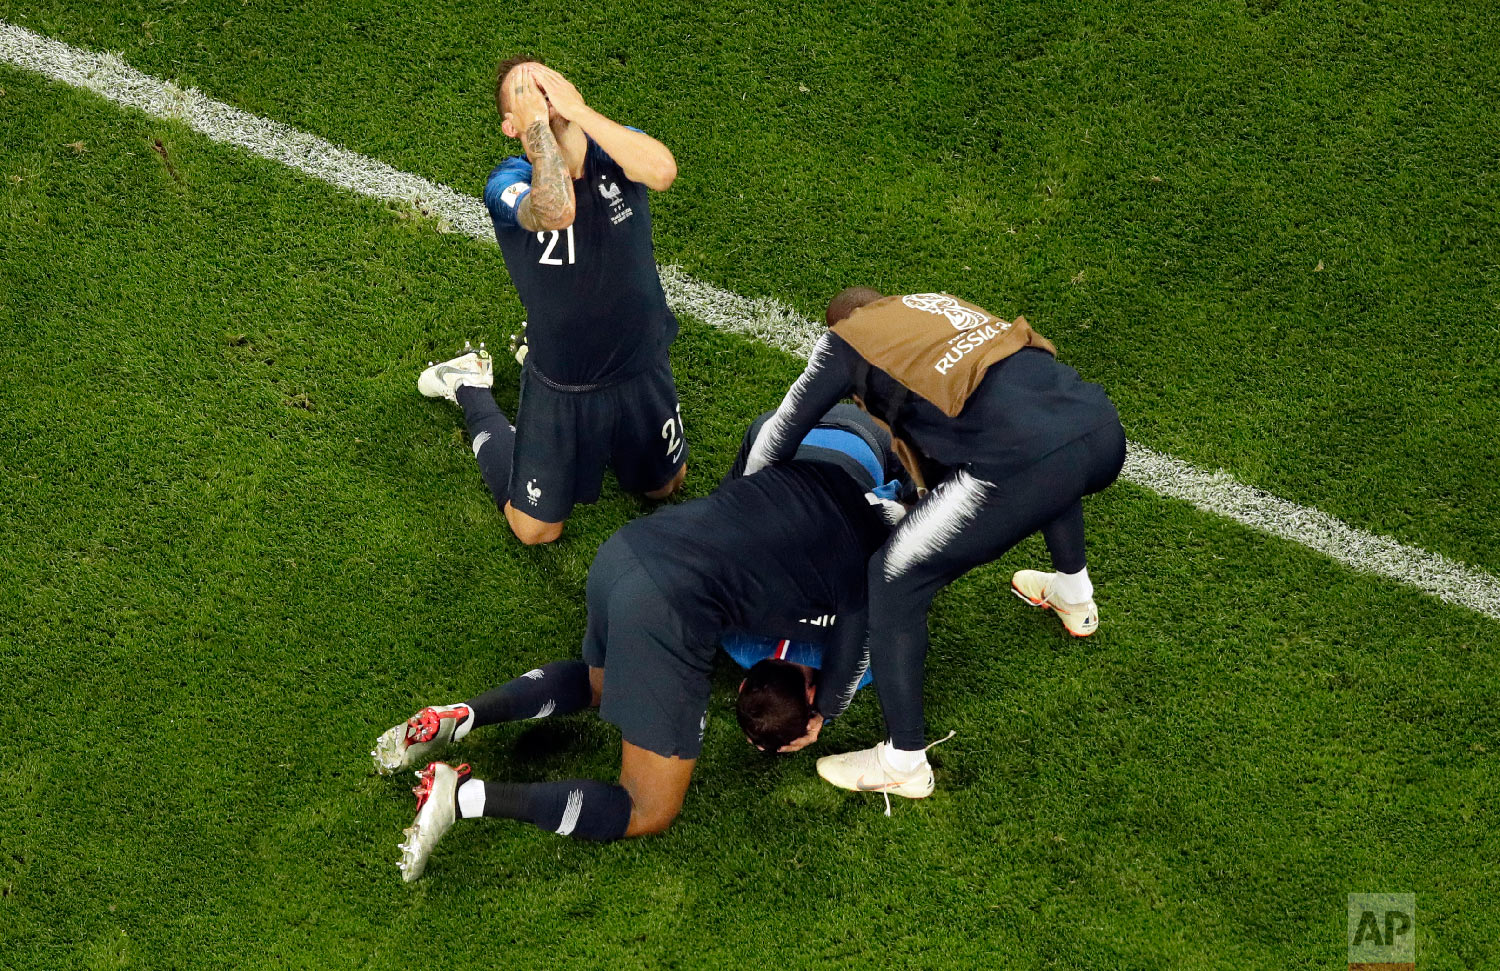 France players celebrate their victory after the the semifinal match between France and Belgium at the 2018 soccer World Cup in the St. Petersburg Stadium in St. Petersburg, Russia, Tuesday, July 10, 2018. (AP Photo/Dmitri Lovetsky)